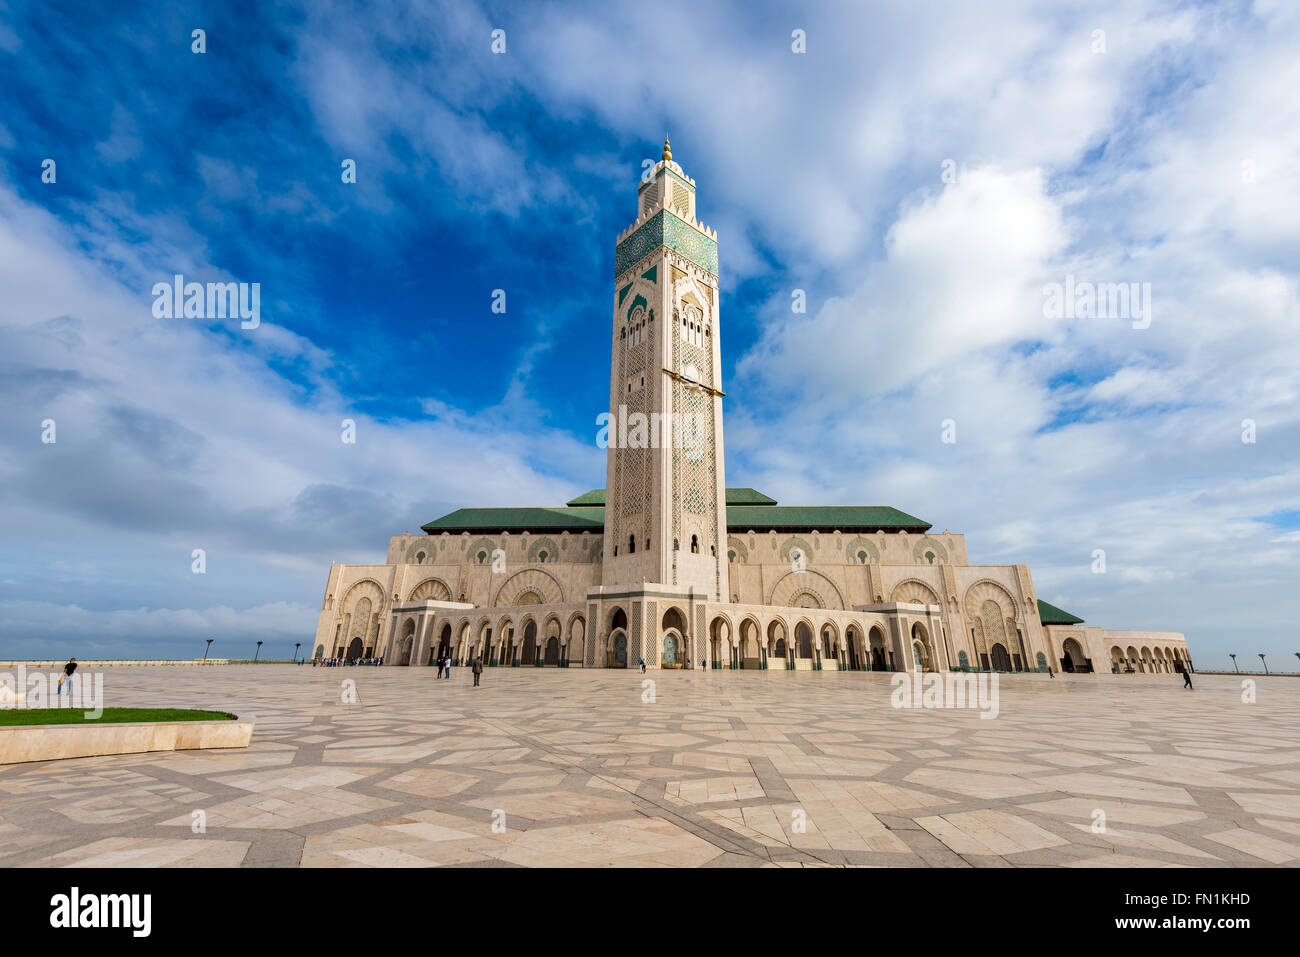 Casablanca, Morocco at Hassan II Mosque. - Stock Image